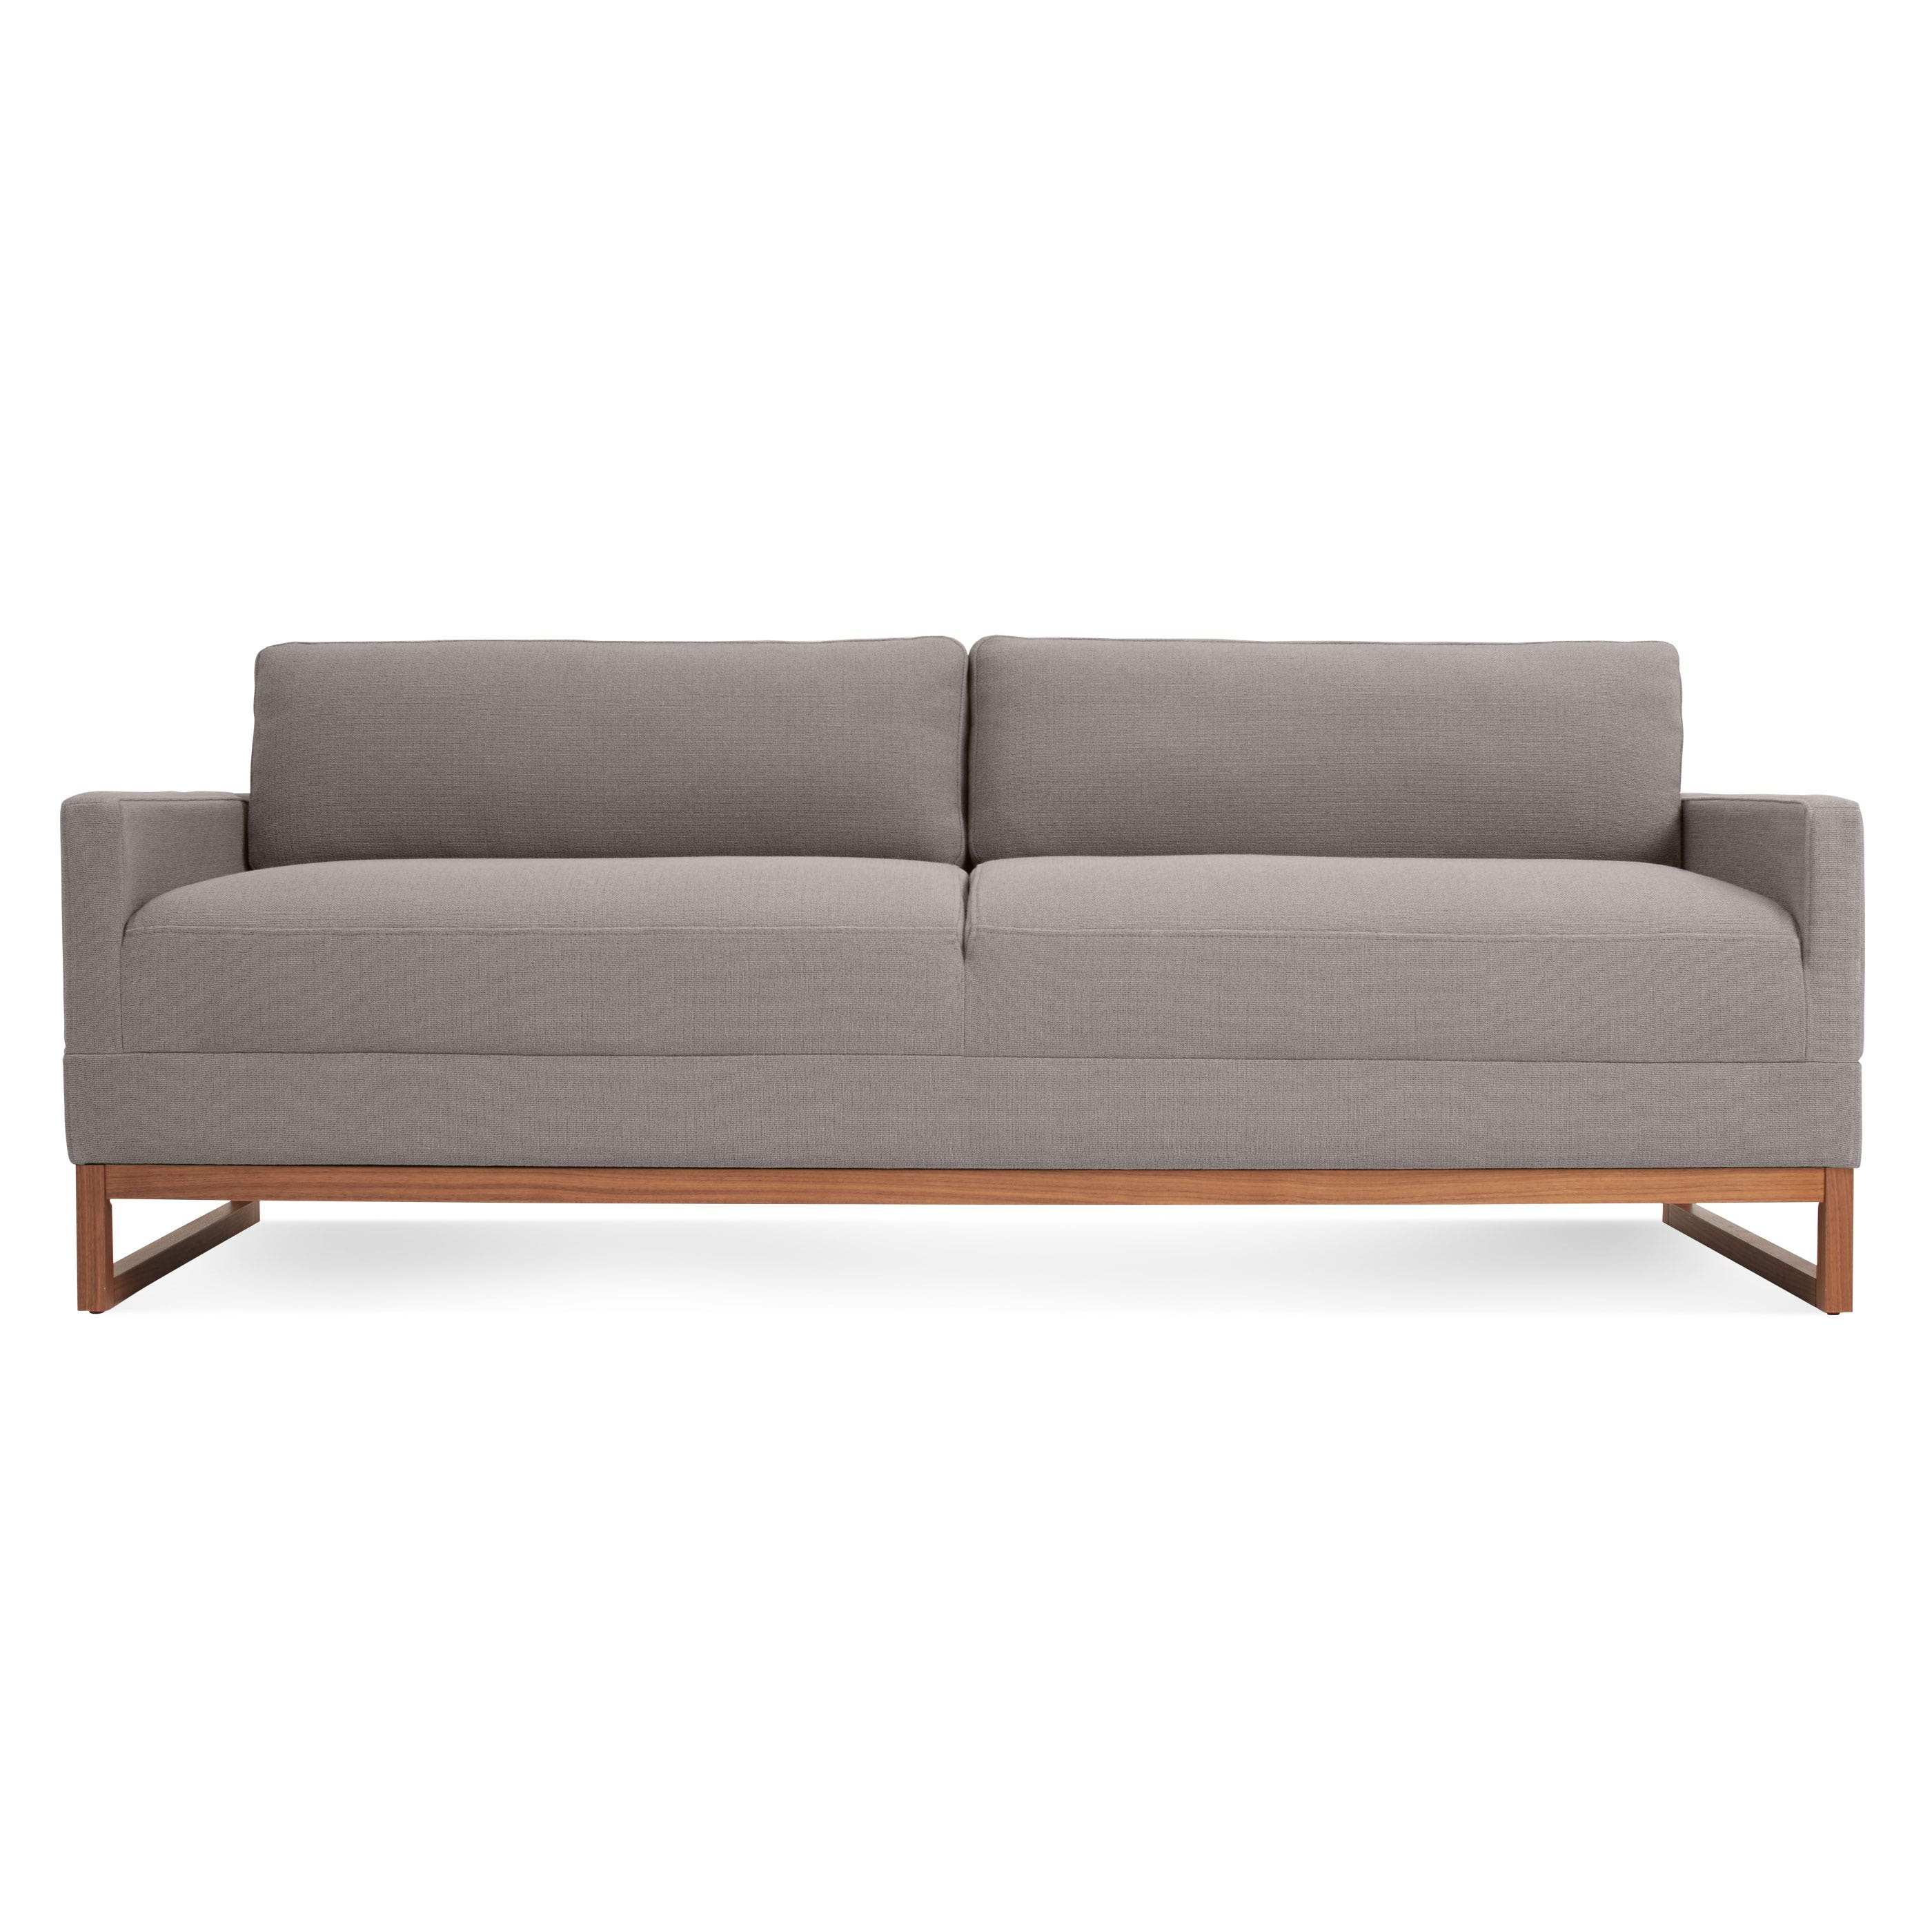 The Diplomat Sleeper Sofa